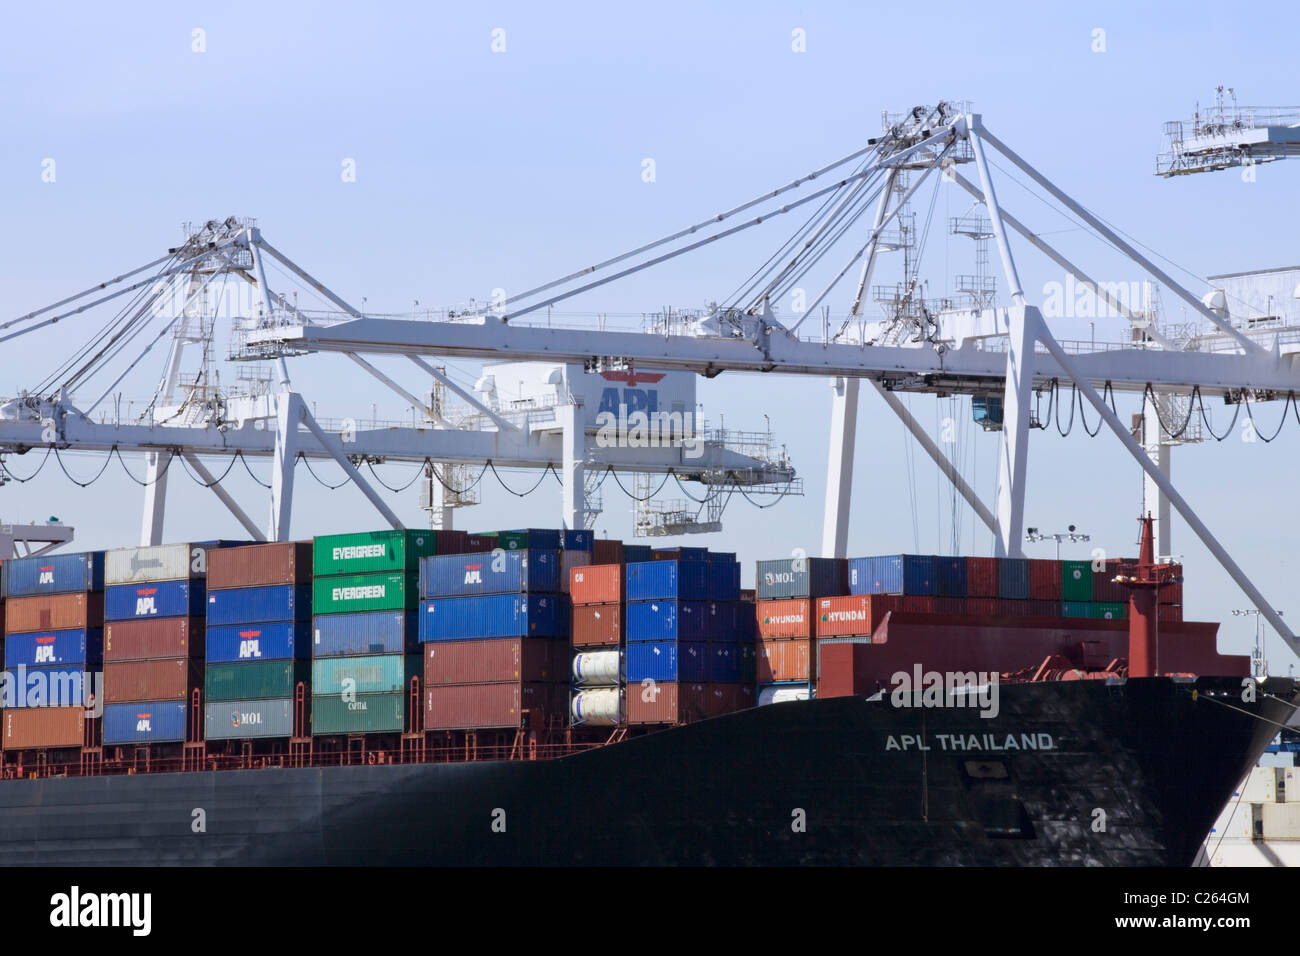 Loading shipping containers on ship - Stock Image